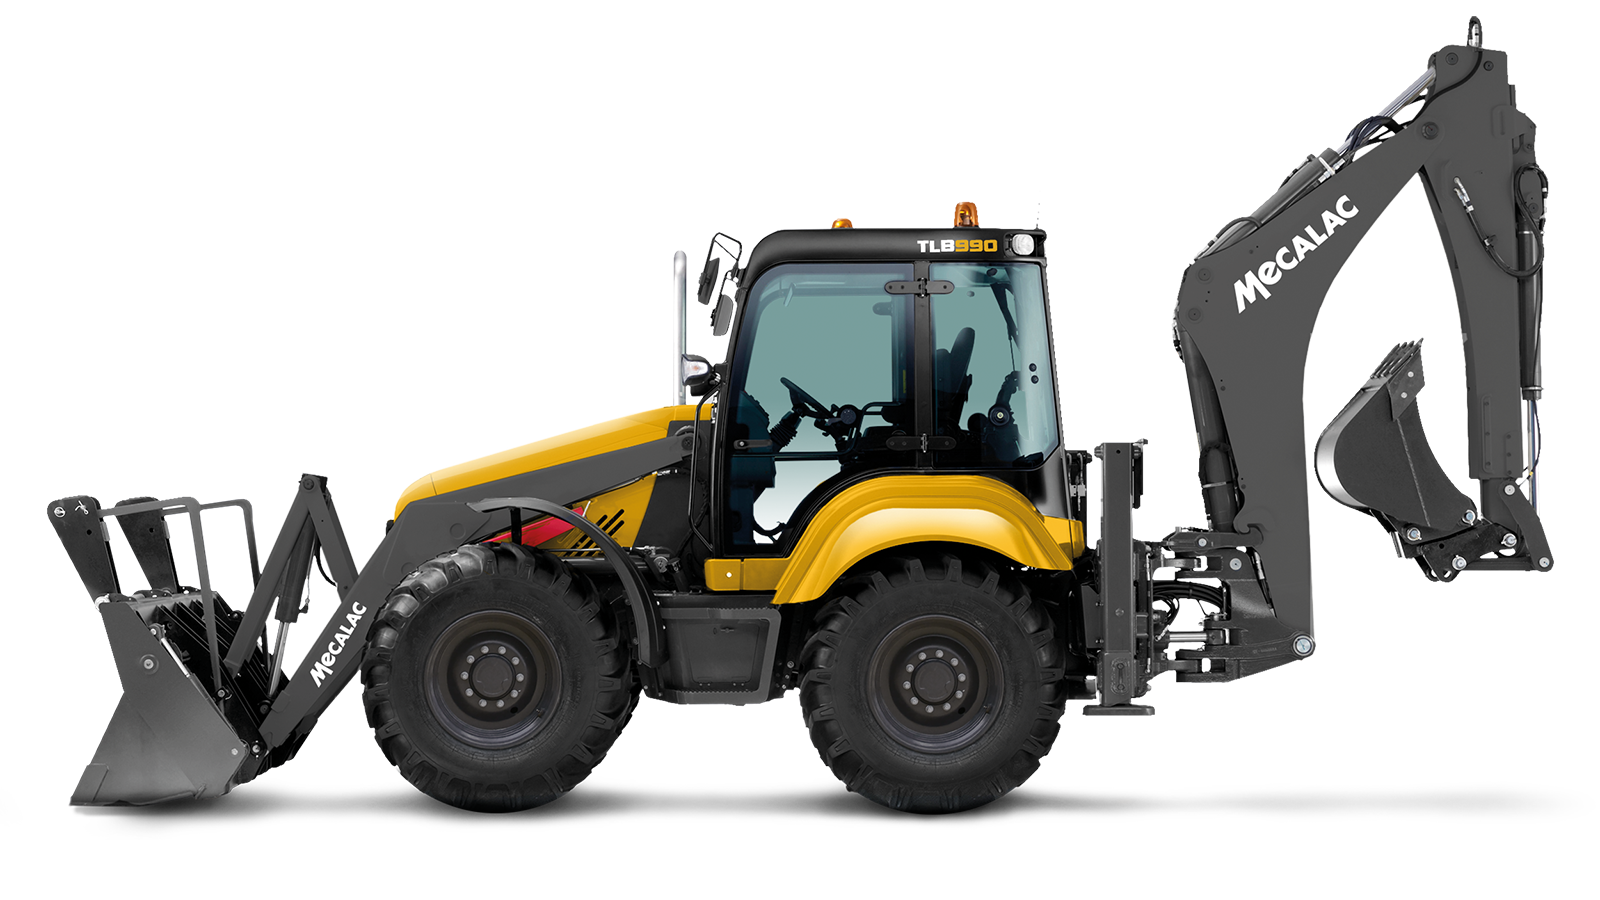 Backhoe vector construction equipment. Mecalac innovative for urban